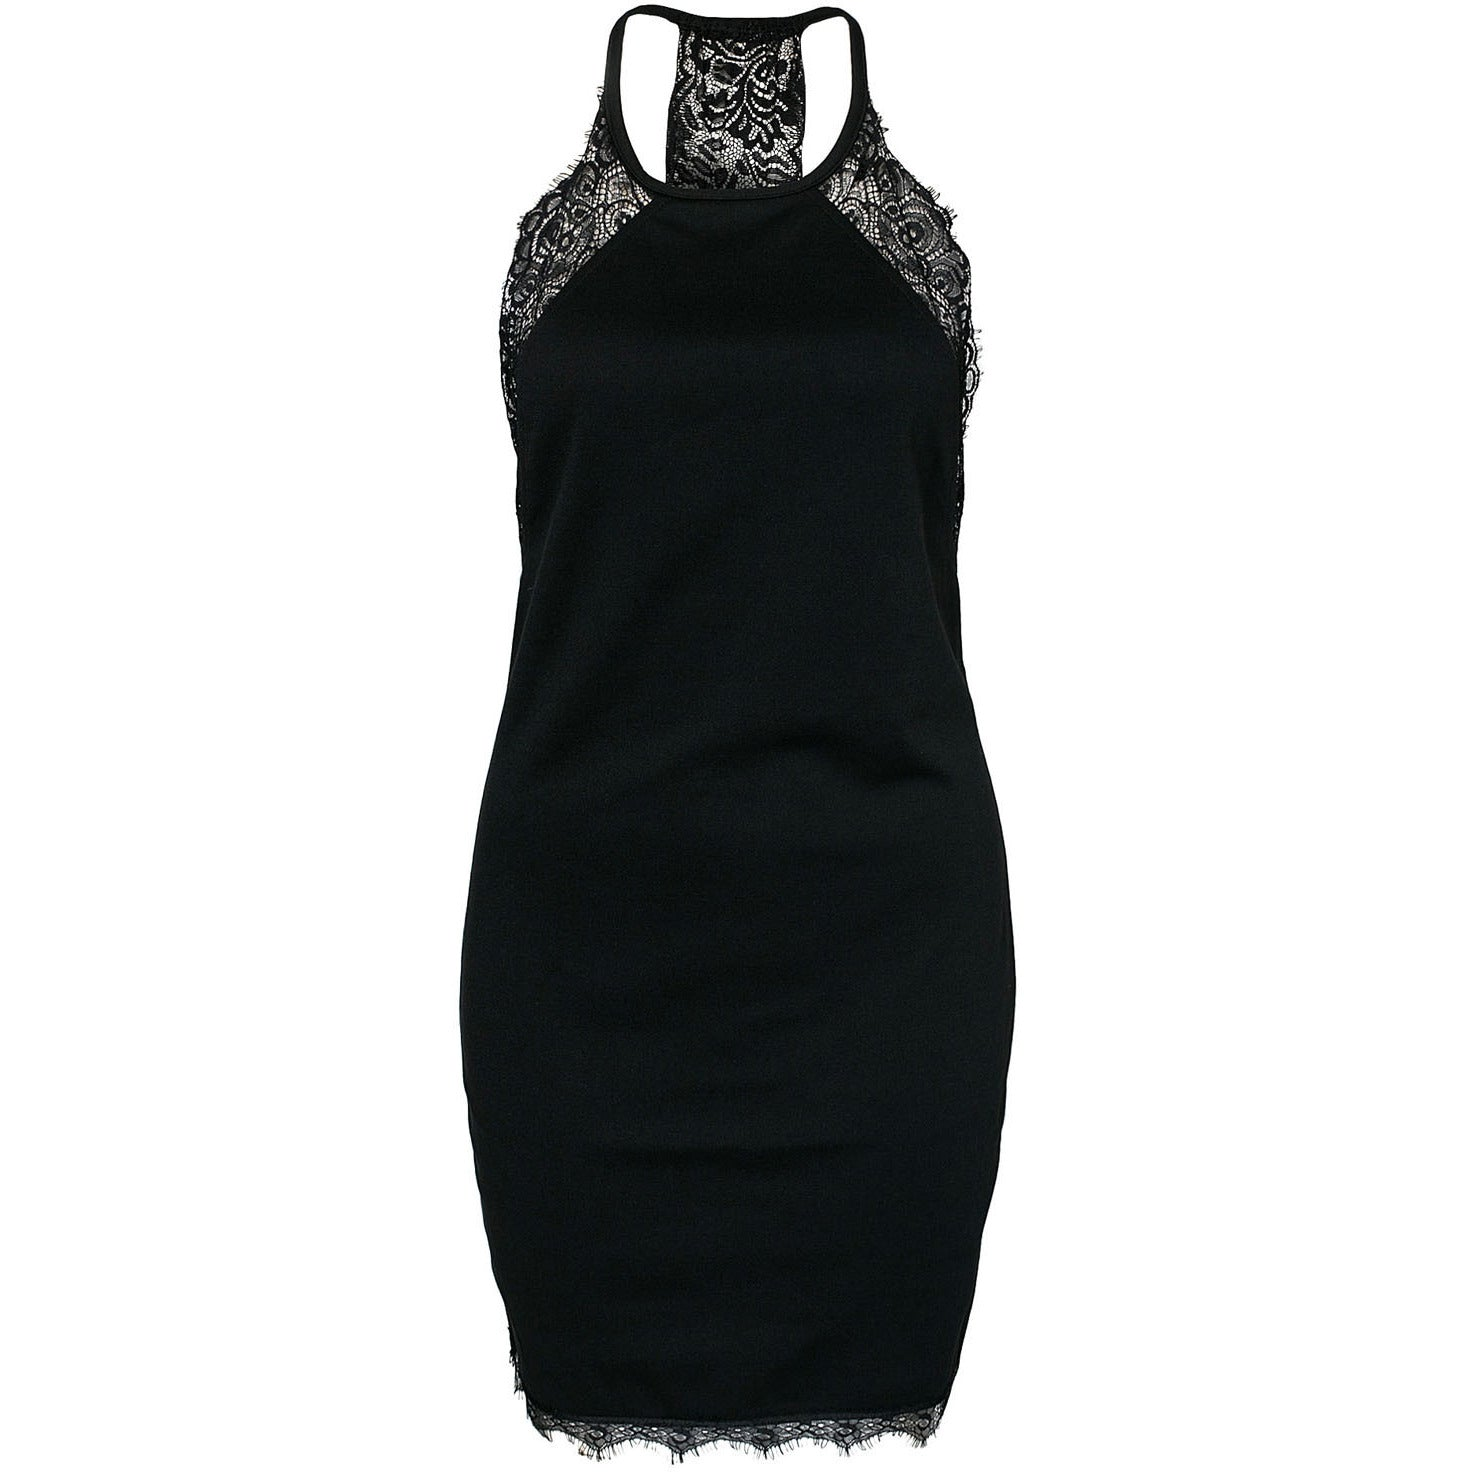 T Back Little Black Dress LAVELIQ - LAVELIQ - 3